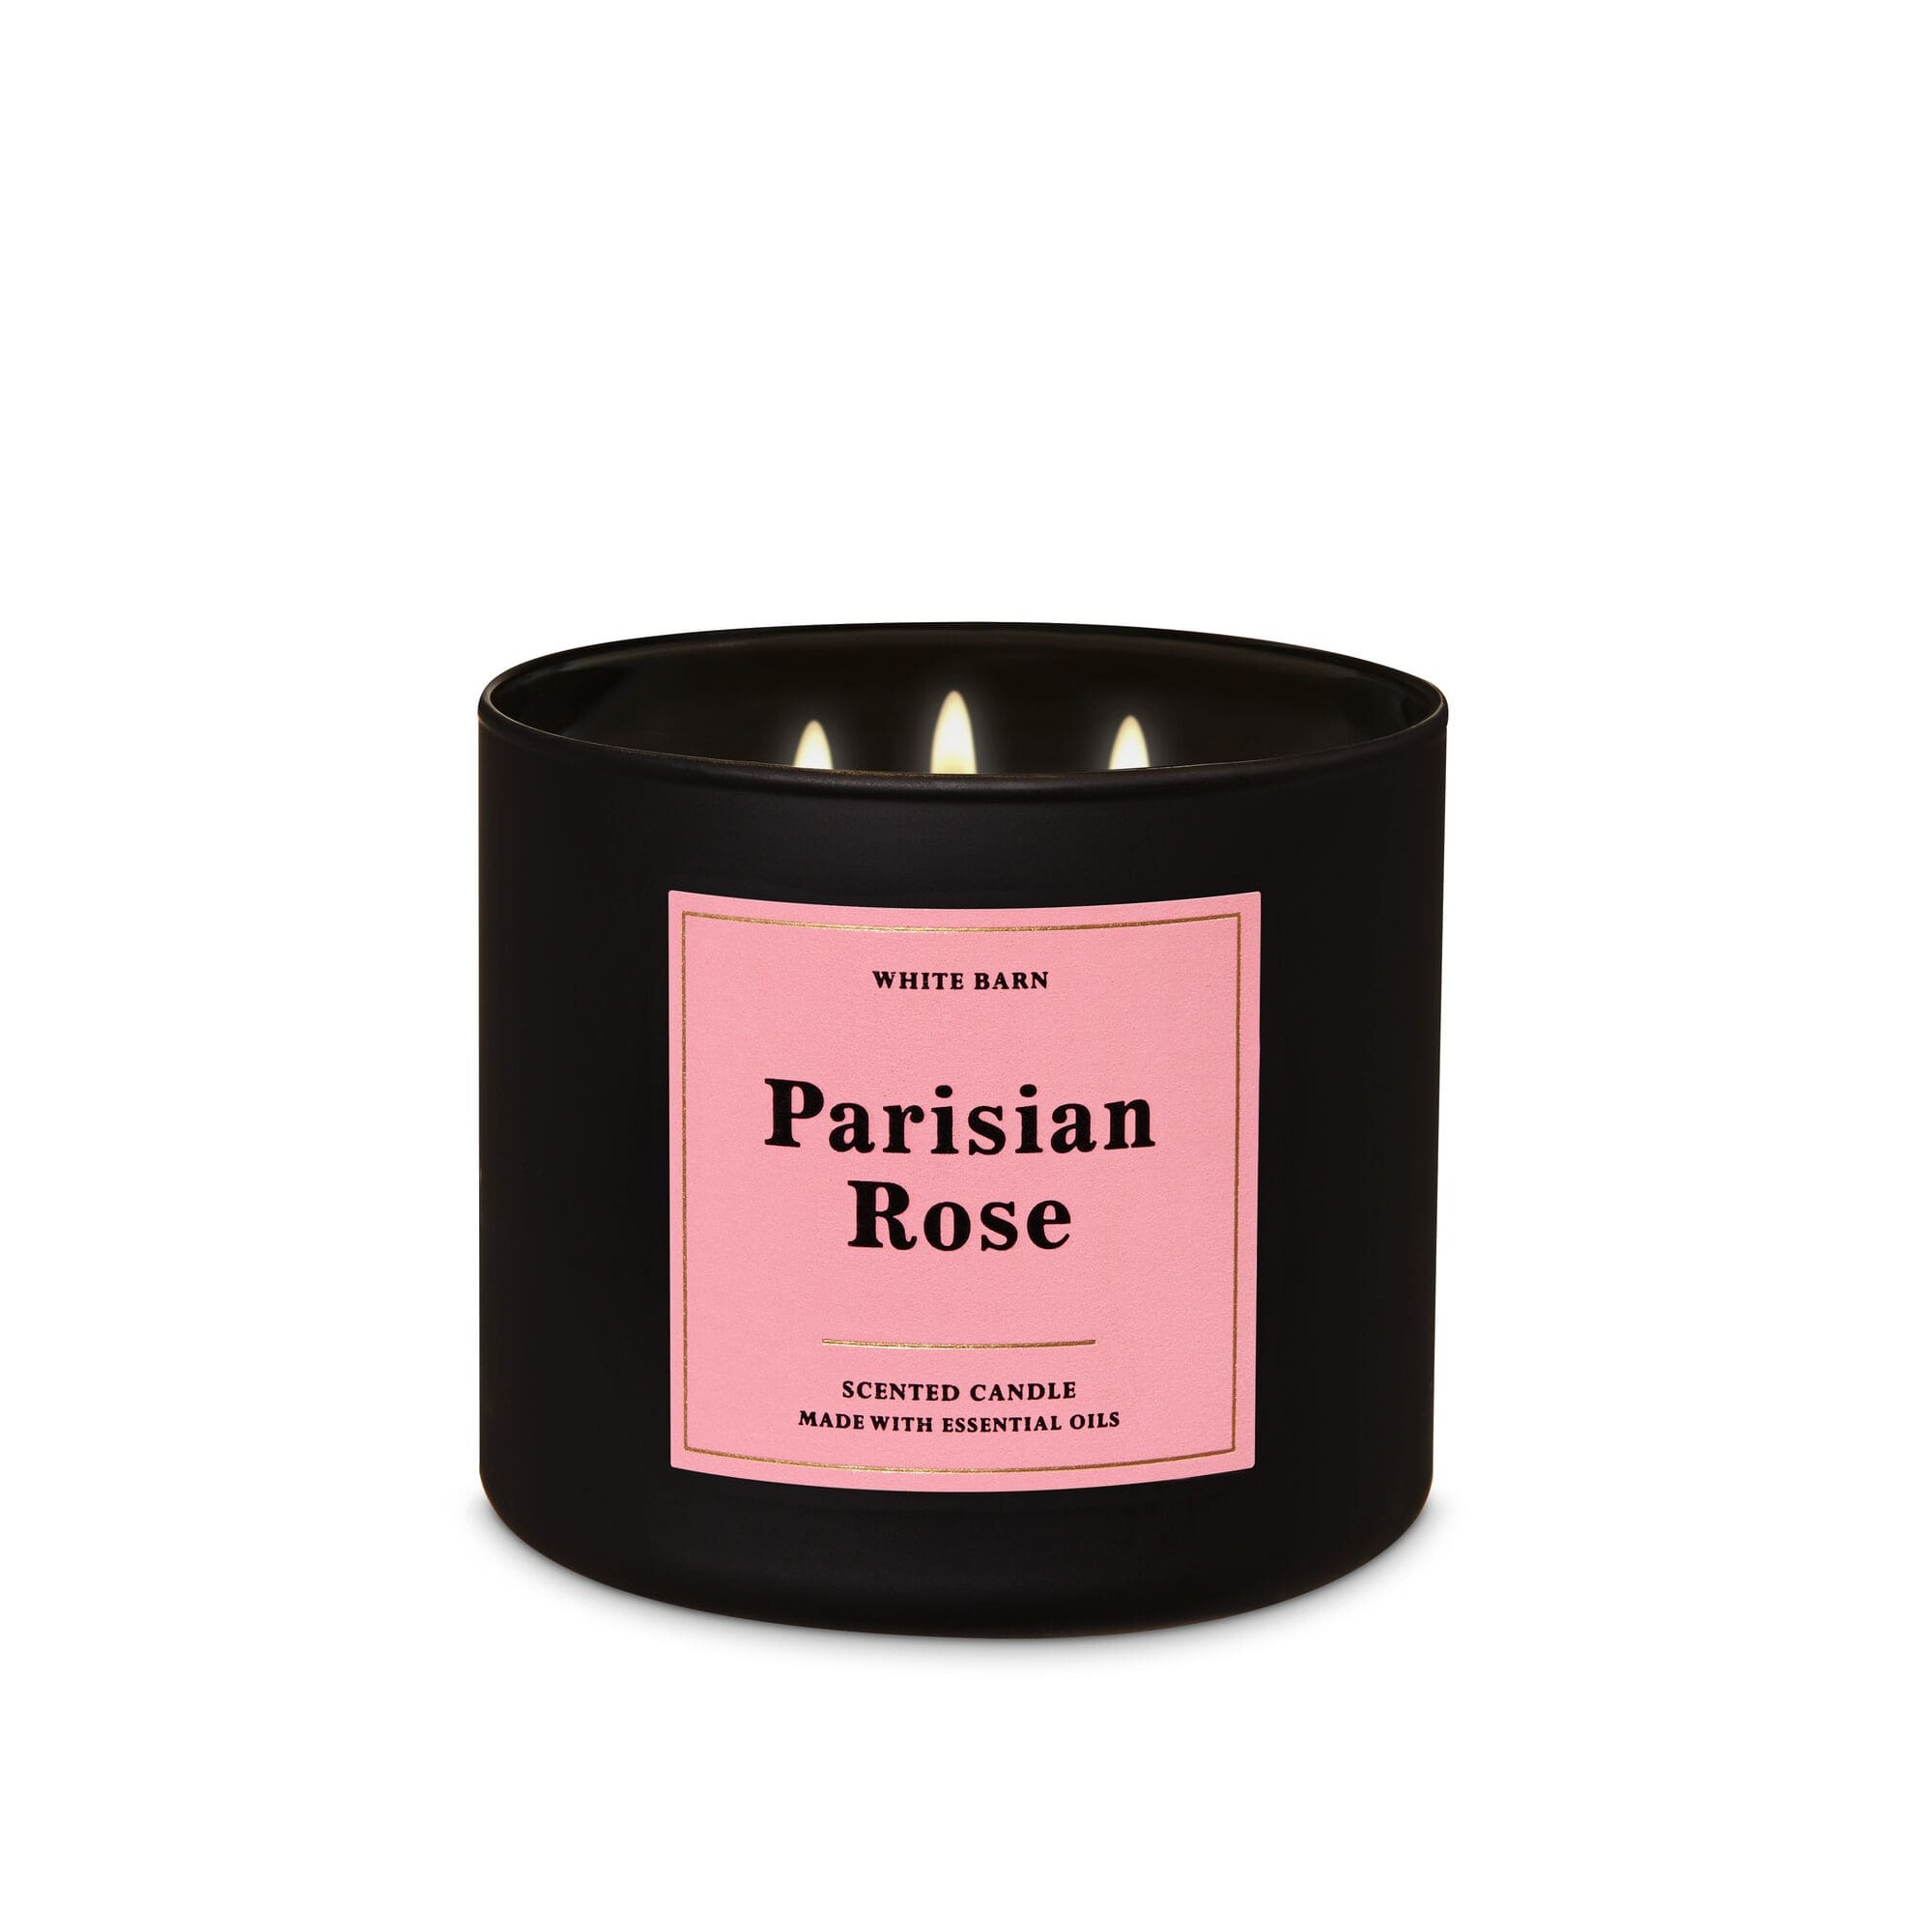 Bath & Body Works White Barn Parisian Rose 3 Wick Scented Candle